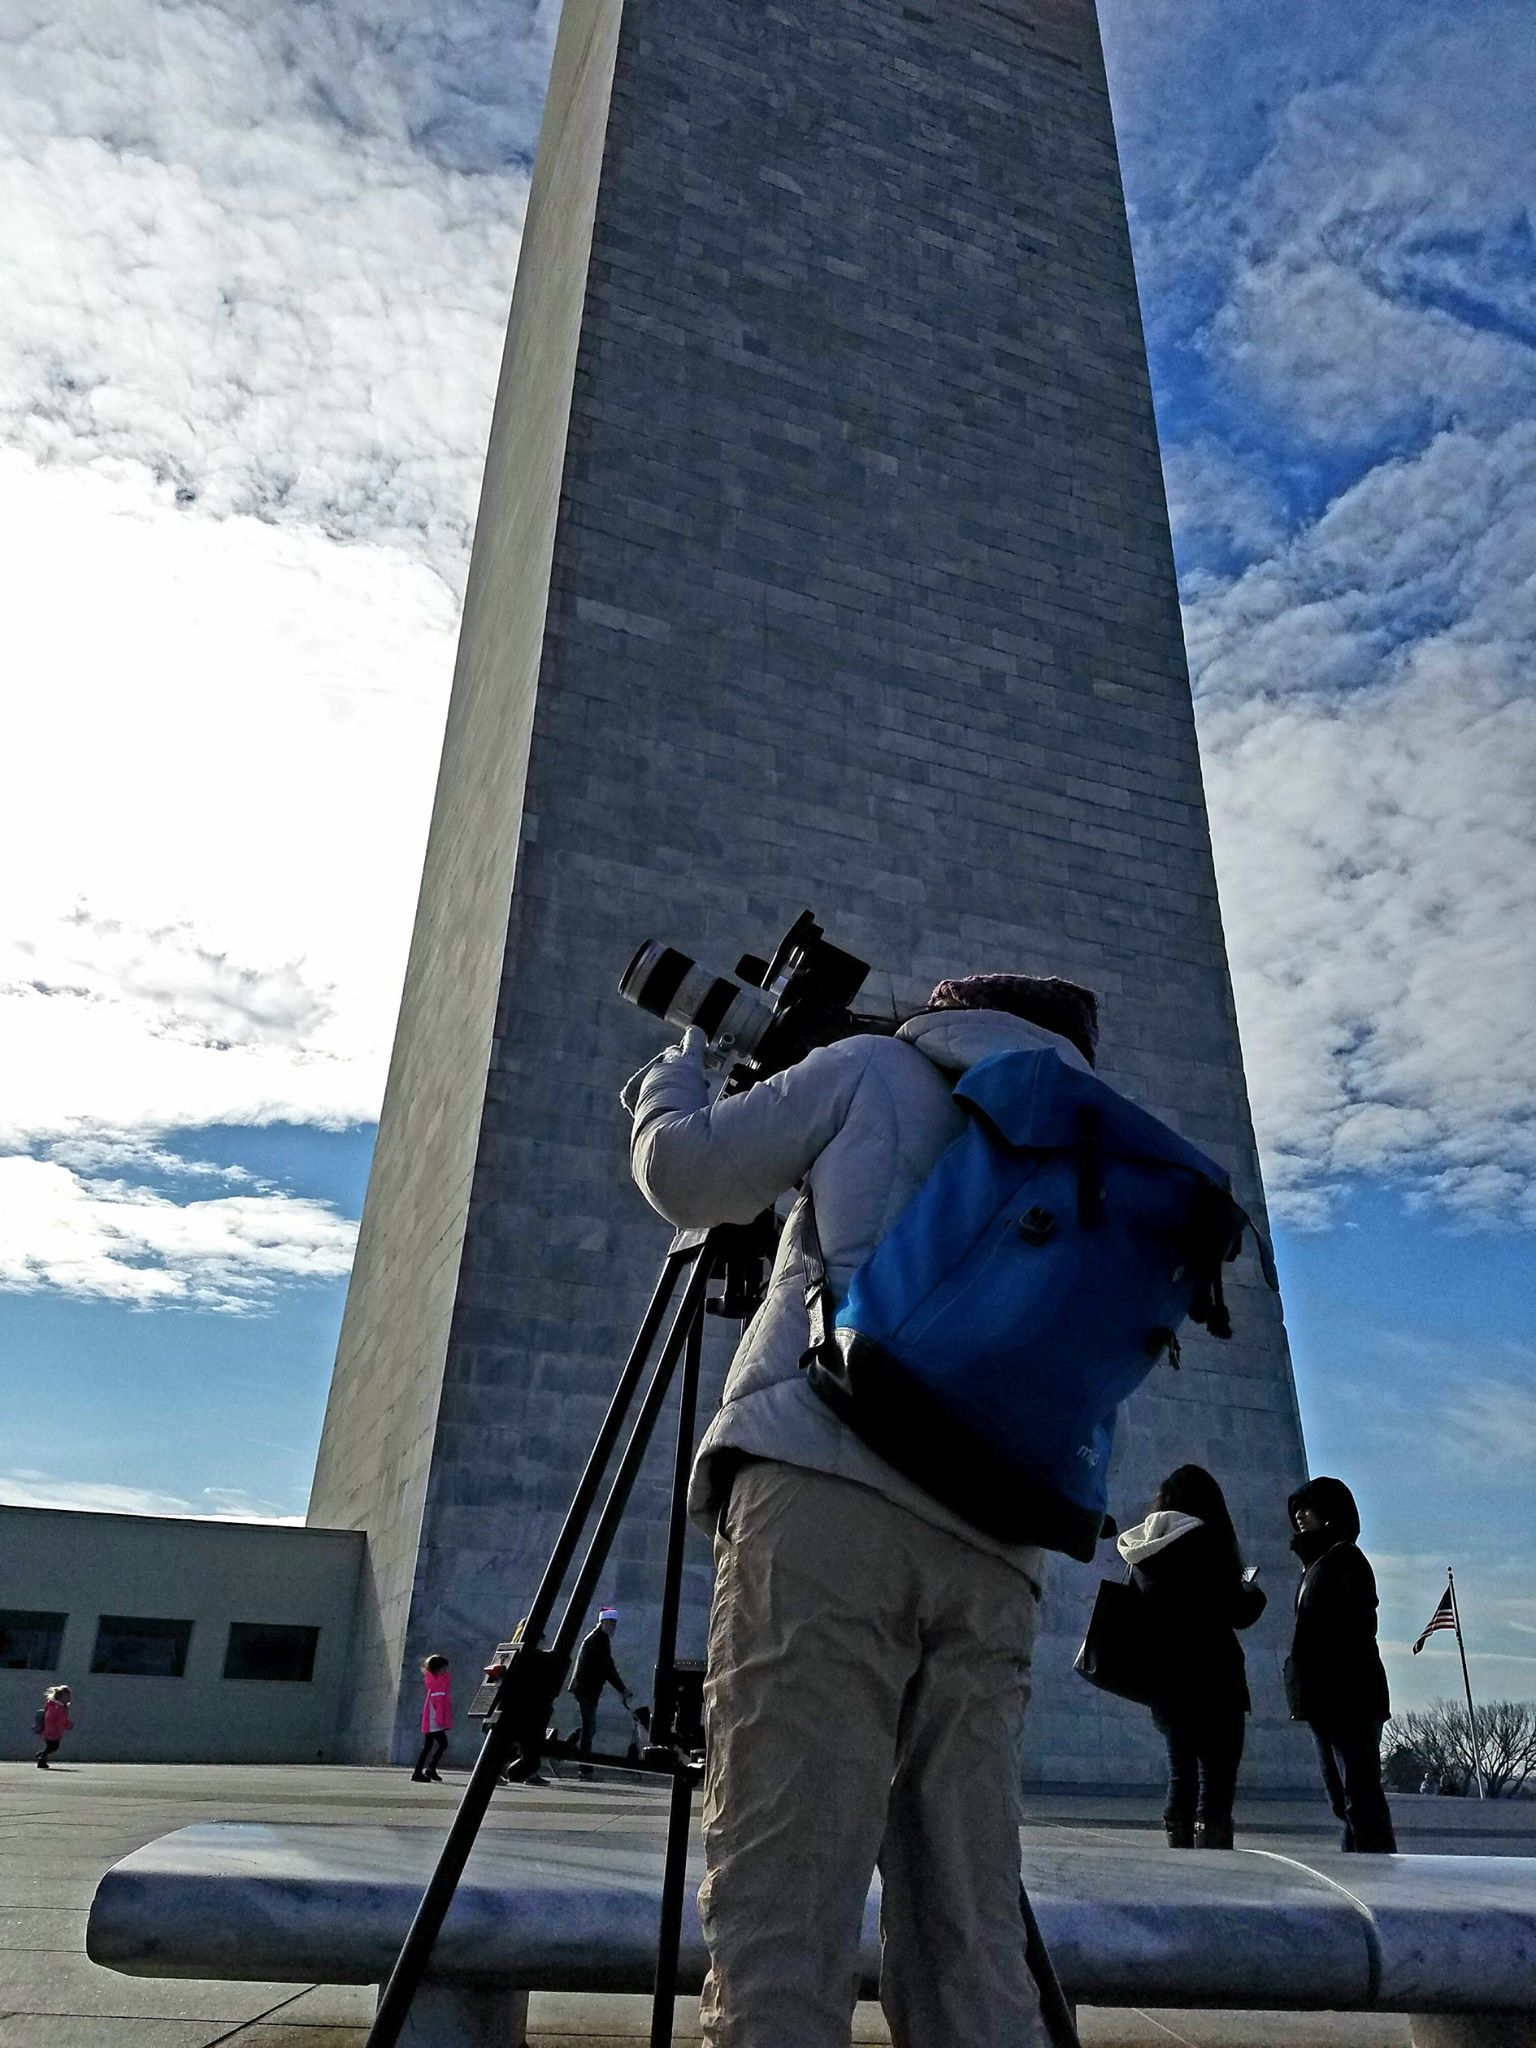 Filming in Washington D.C.